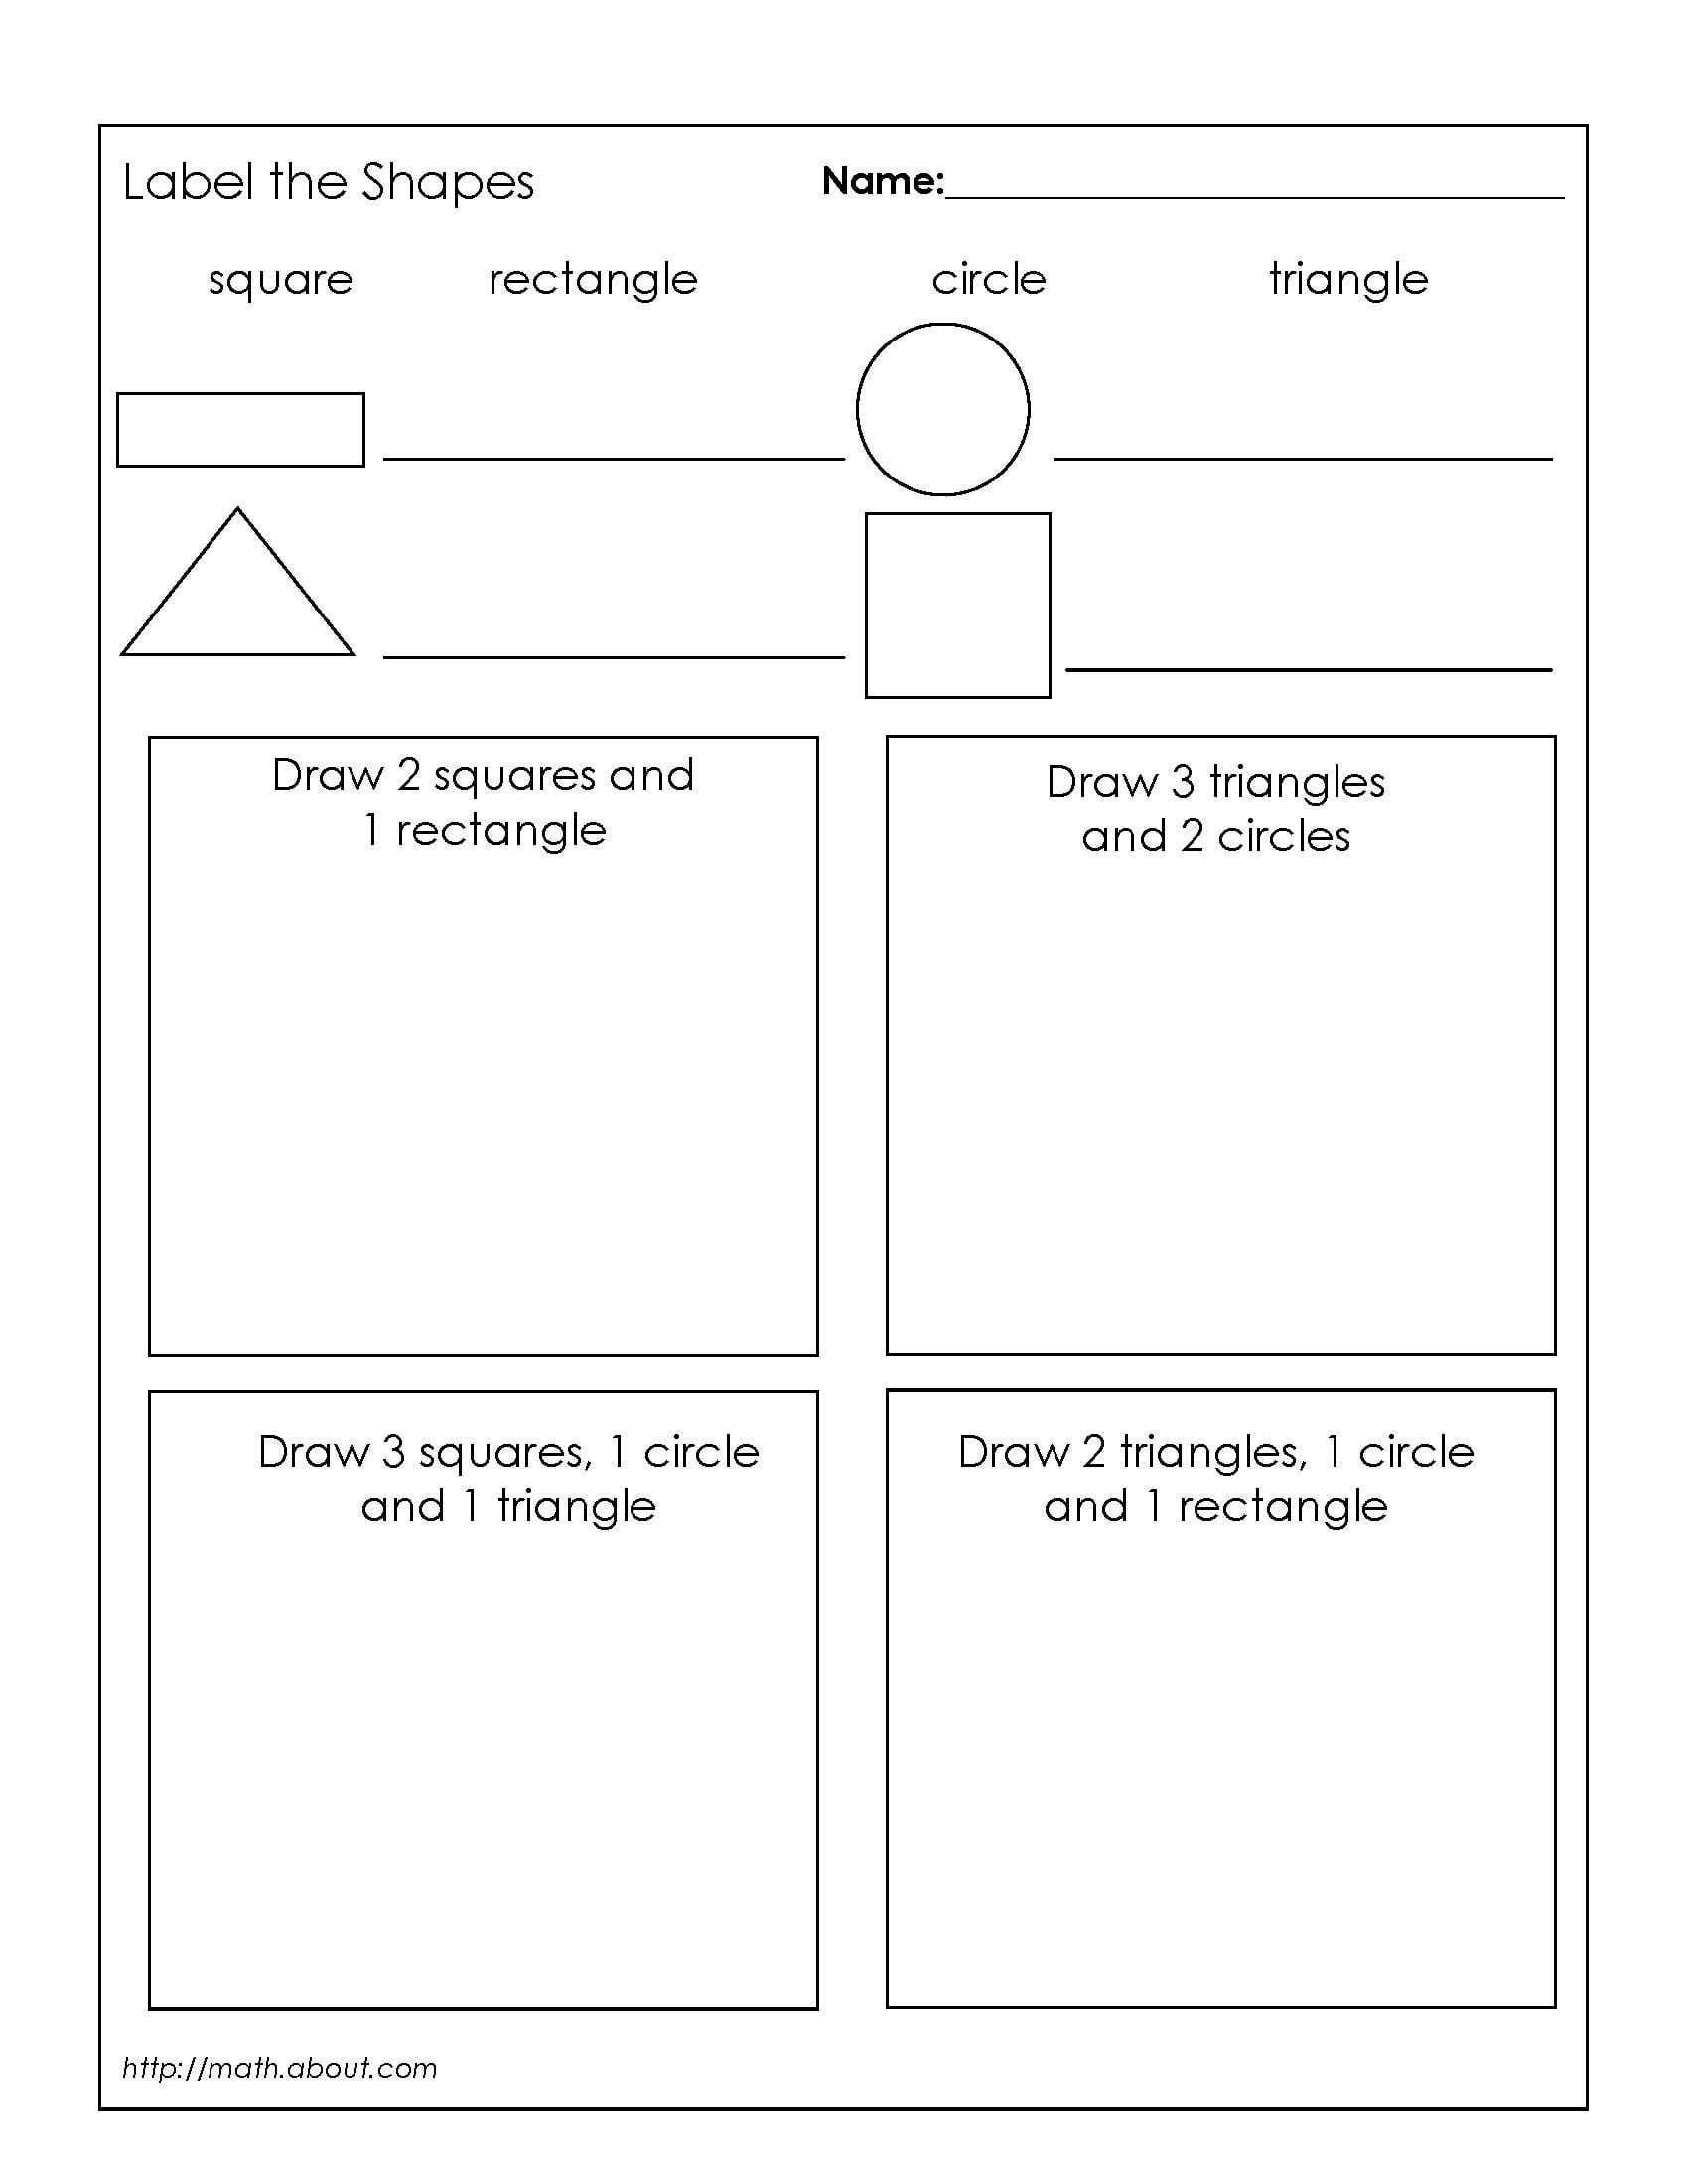 Polygon Worksheets for 2nd Grade Grade 1 Geometry Worksheets First Grade Math Geometry